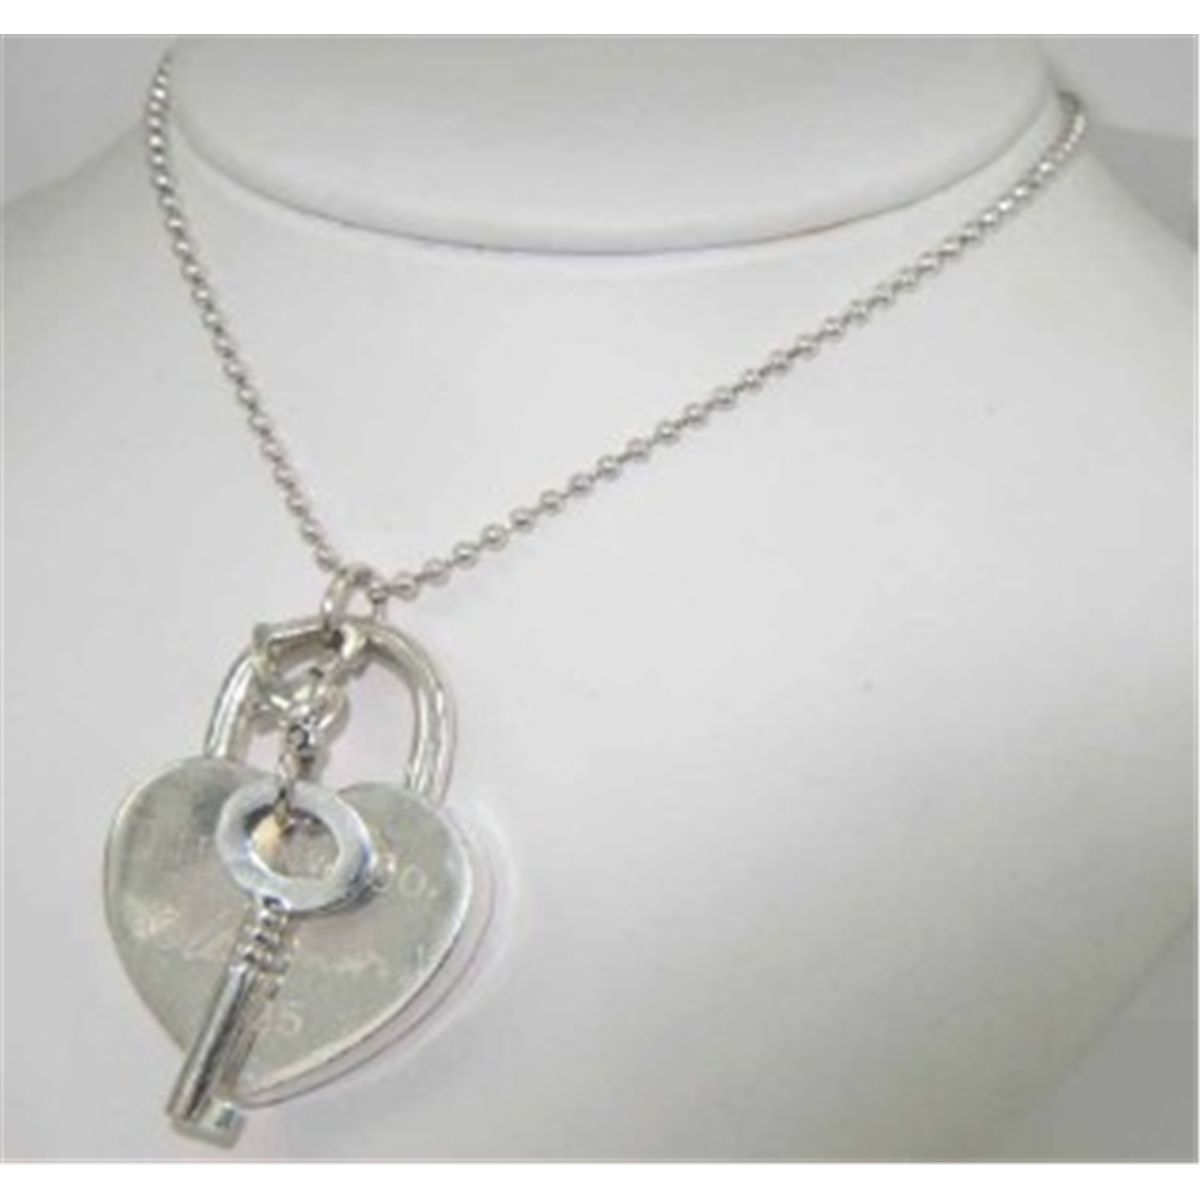 Tiffany co silver heart lock key pendant necklace aloadofball Gallery